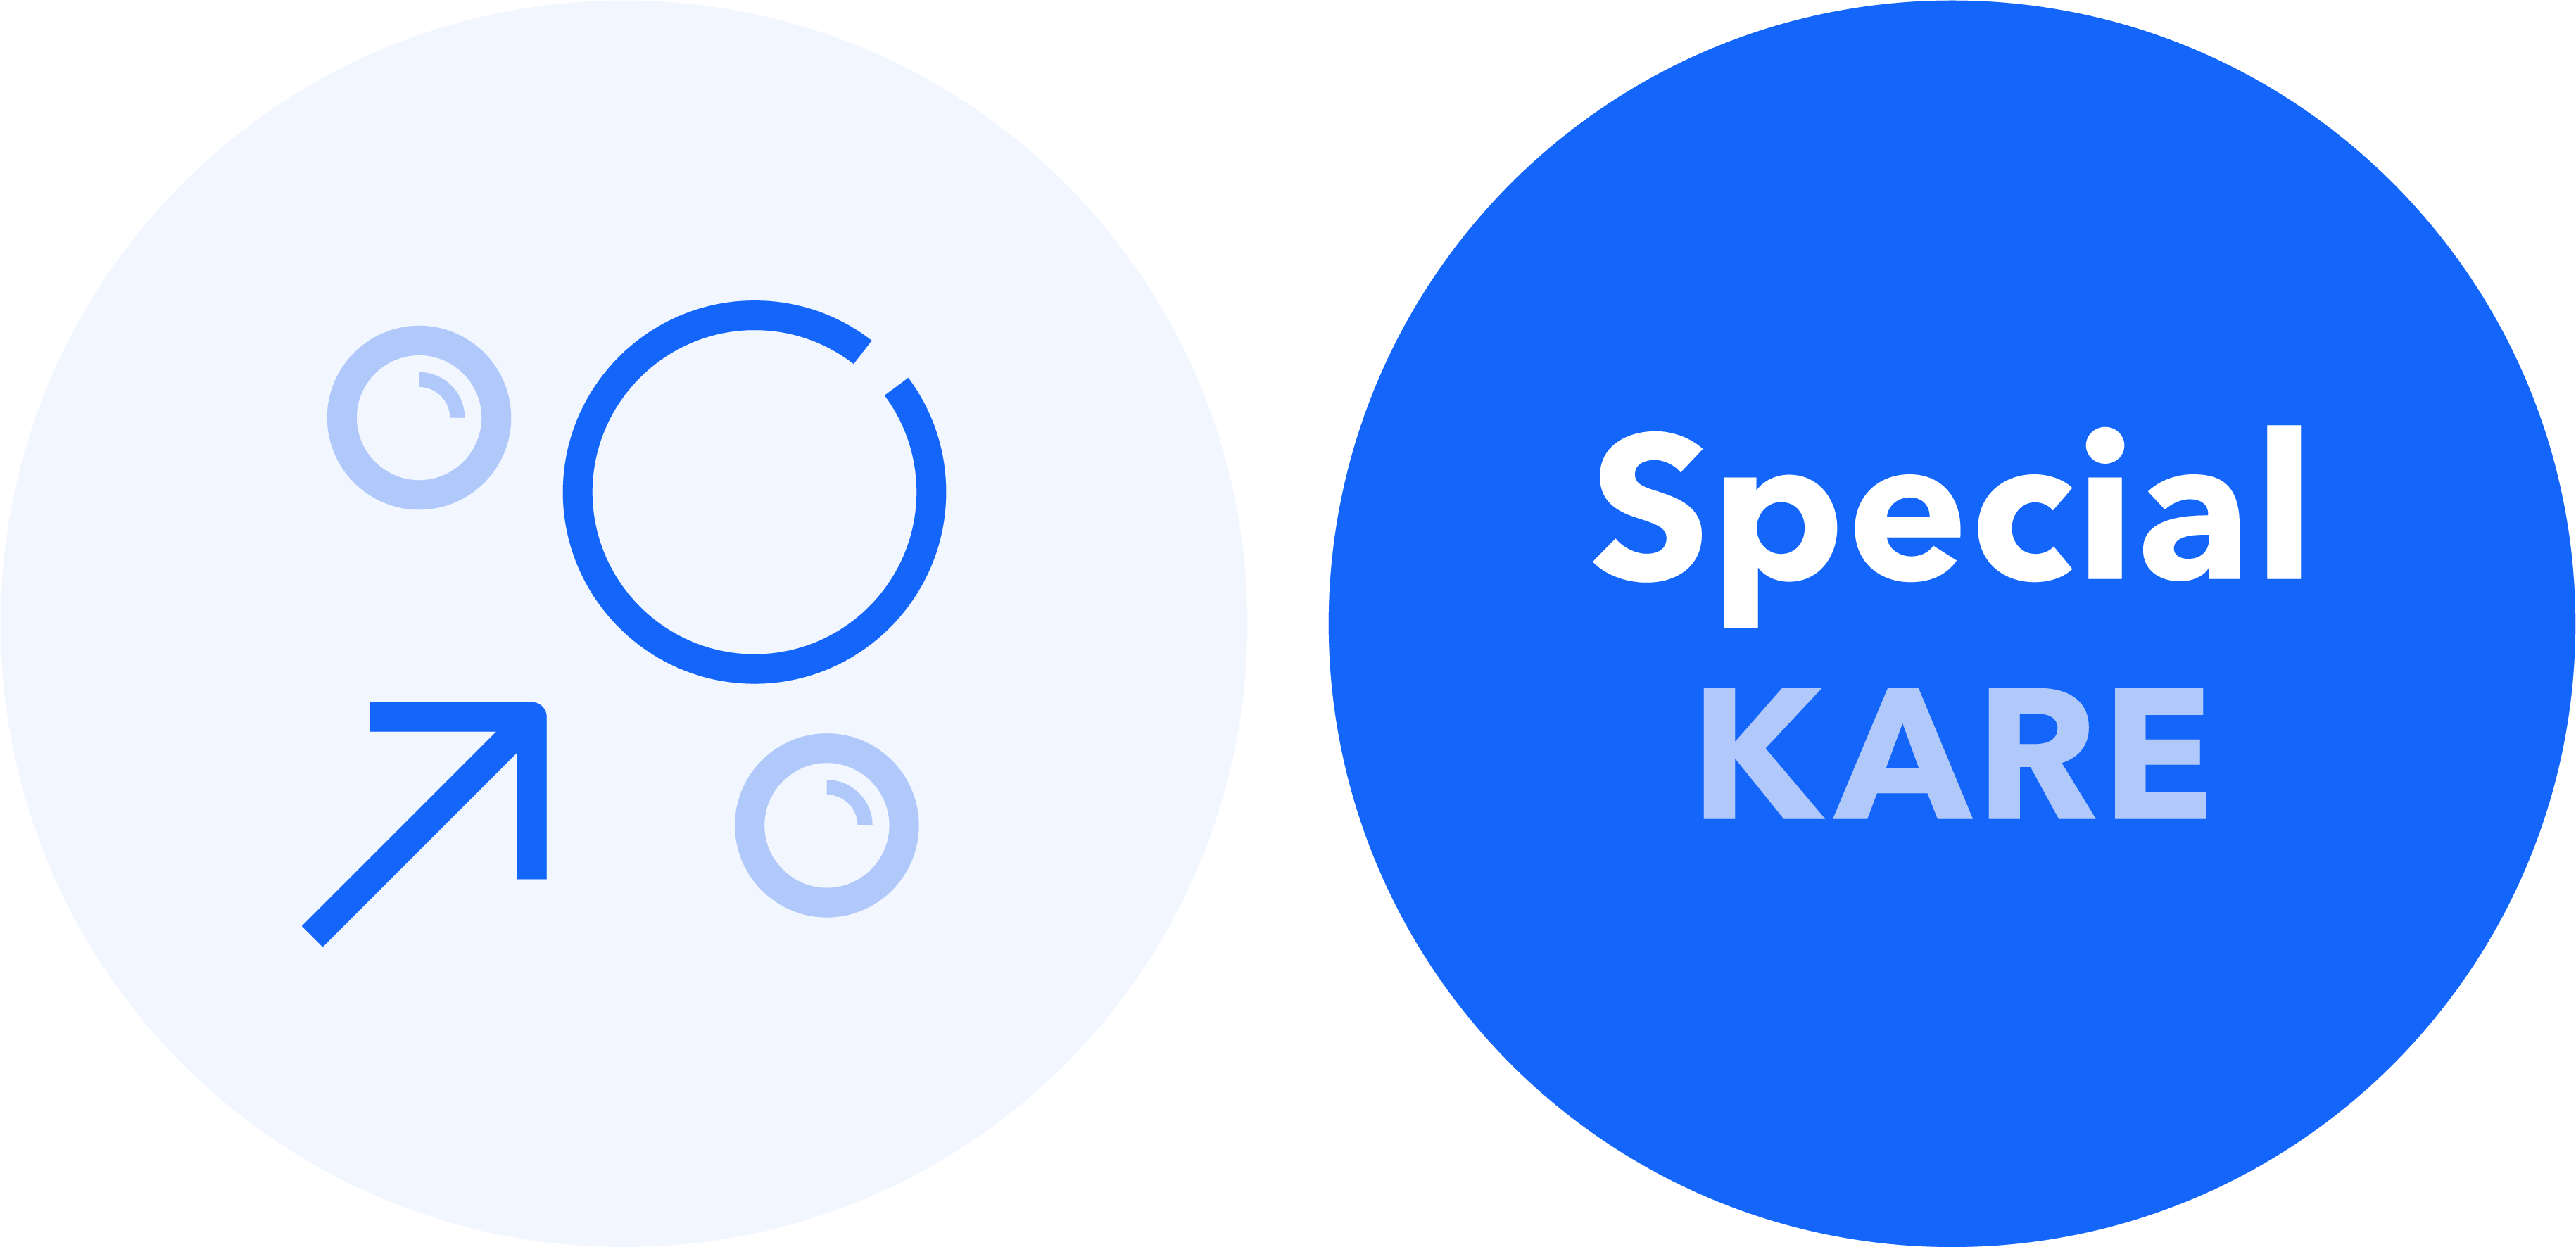 Special Kare icon